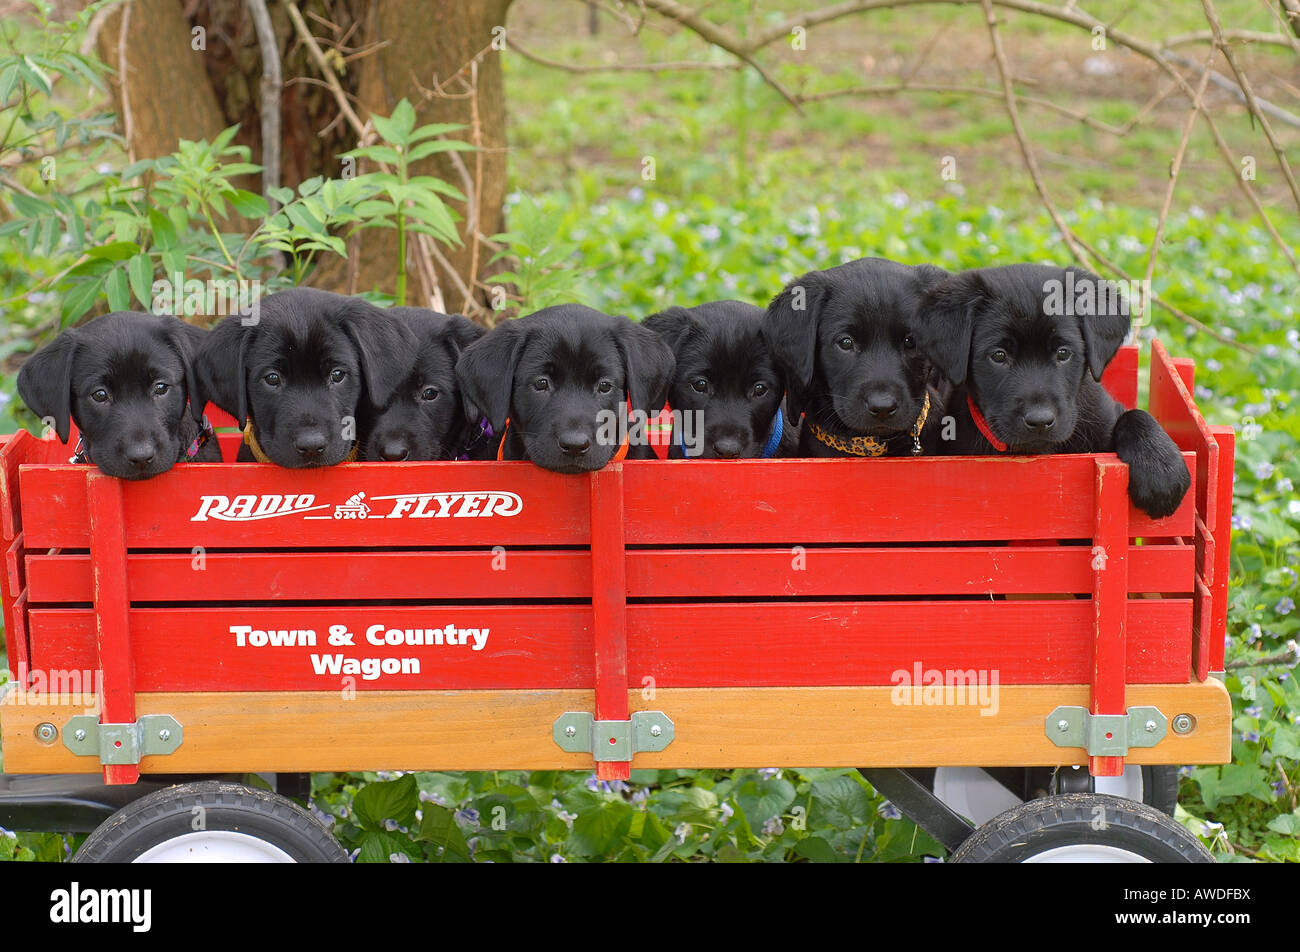 Black Labrador Puppies In Red Wagon Stock Photo Alamy